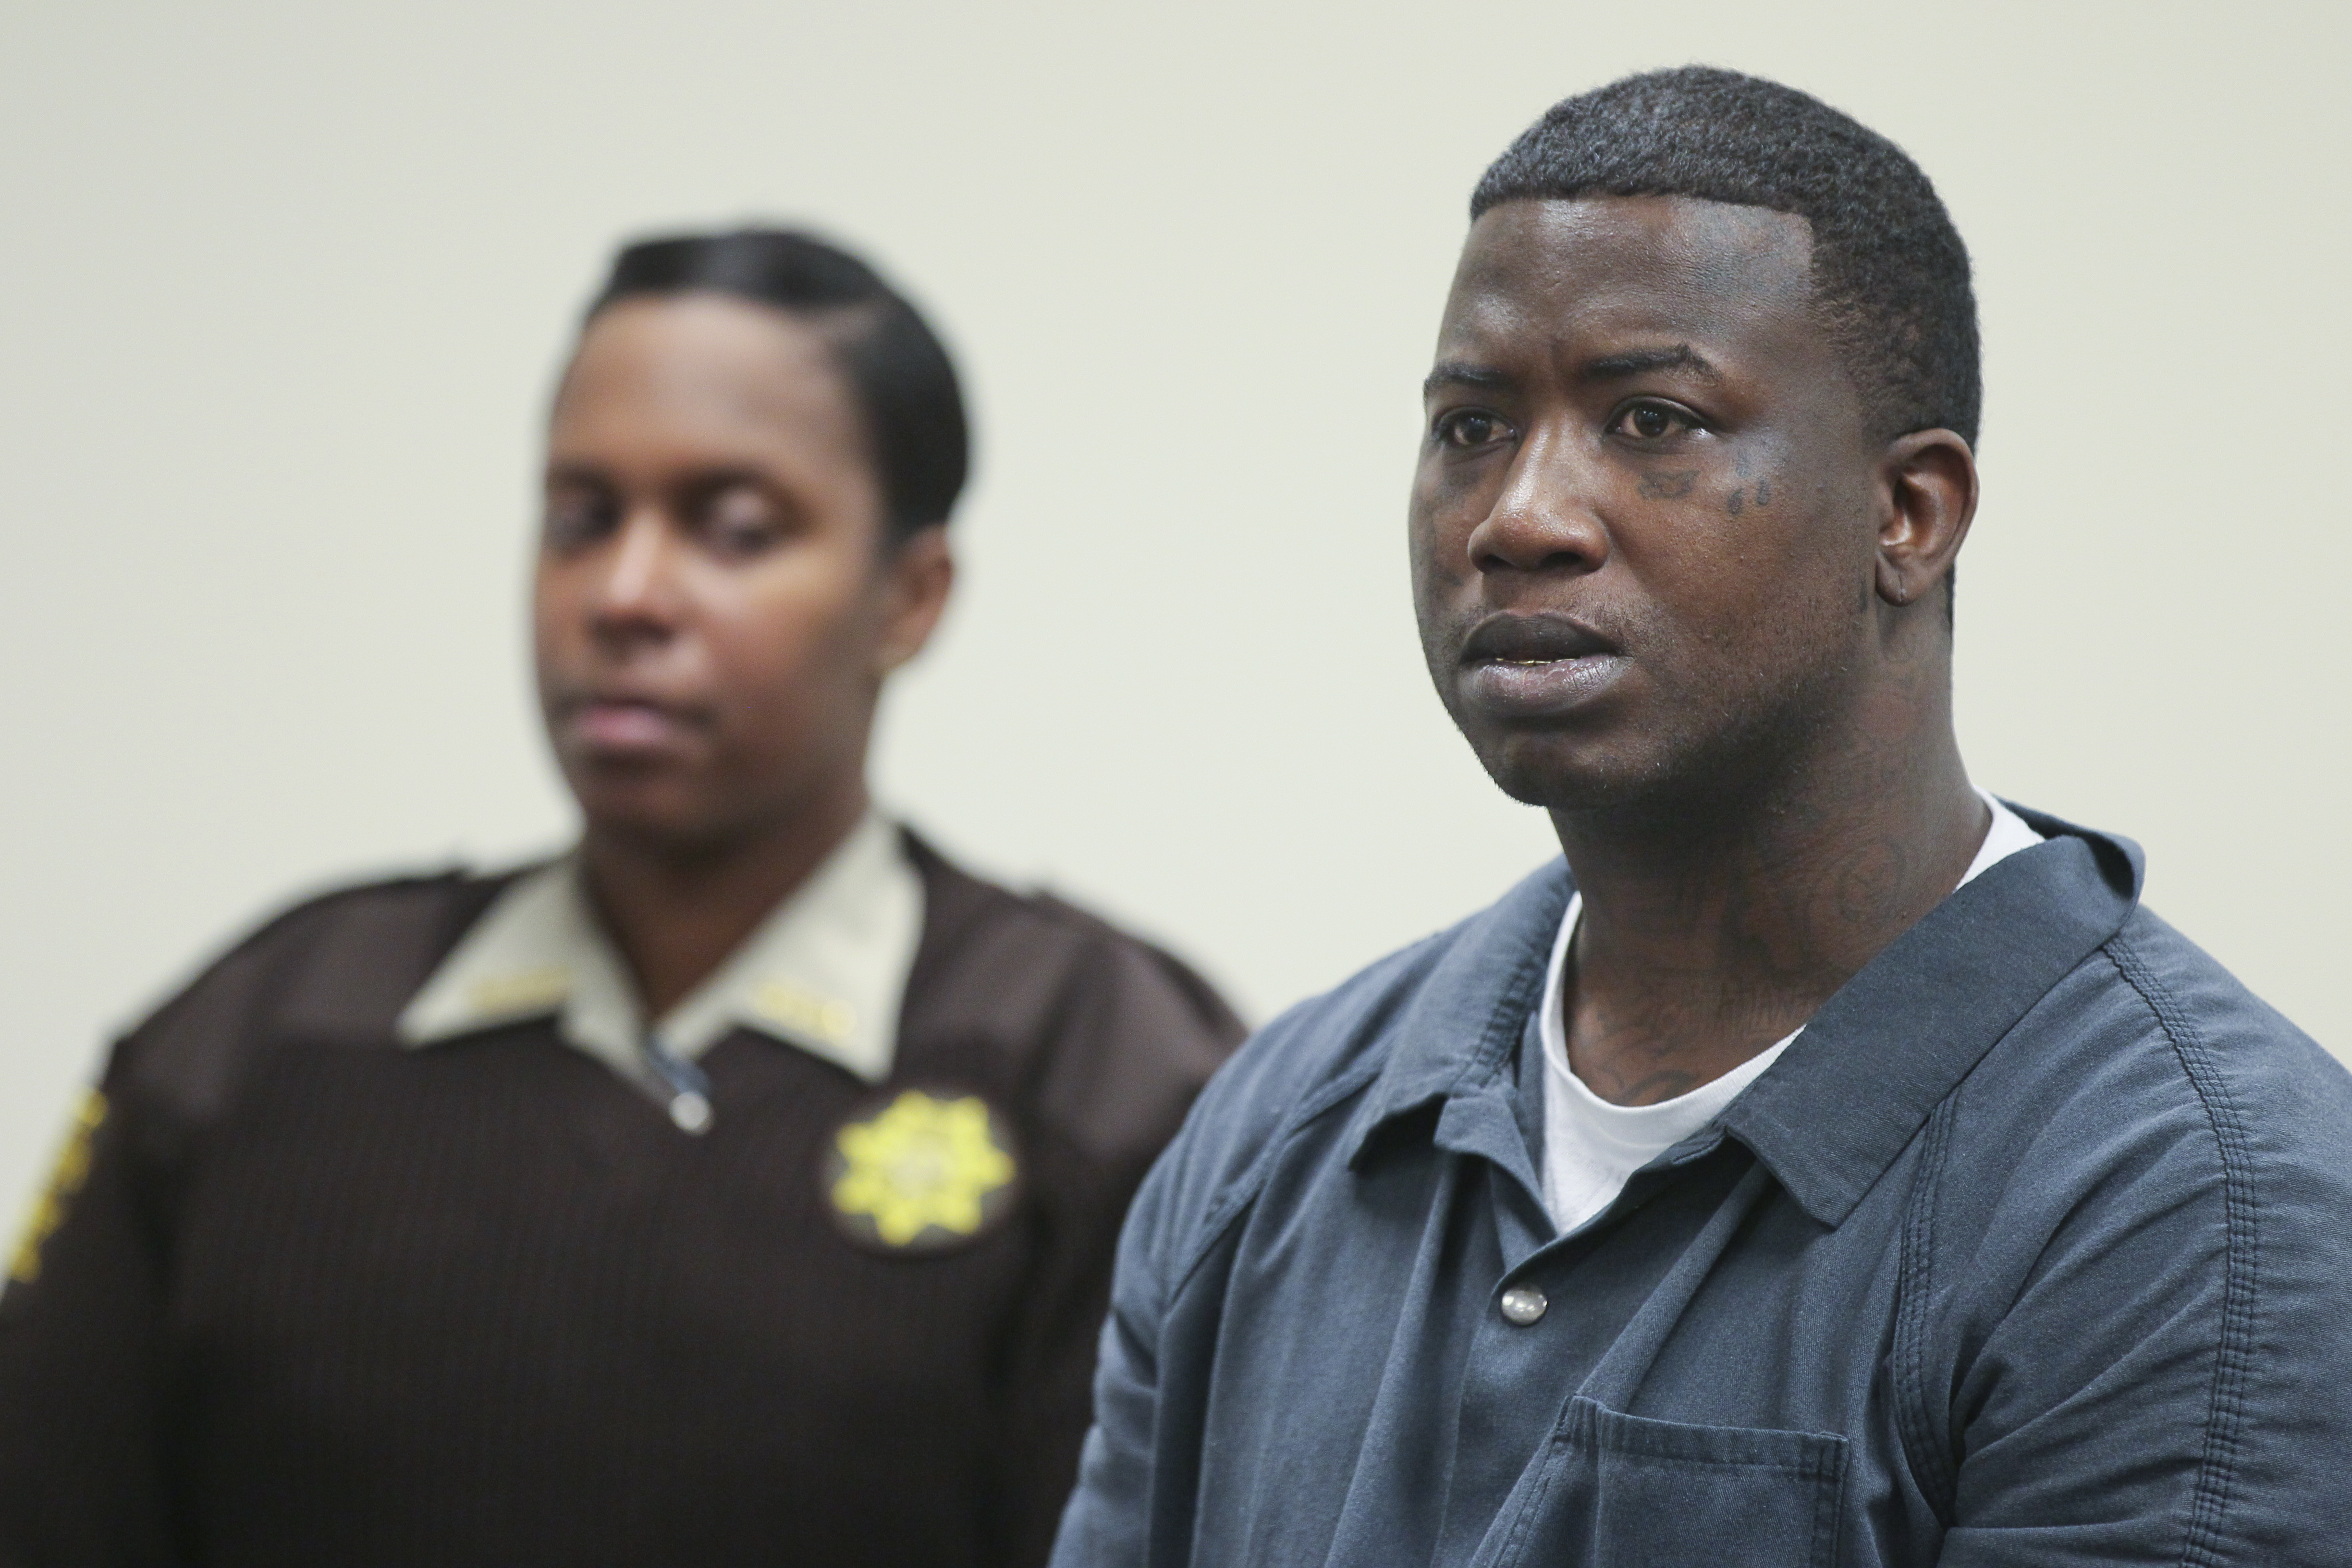 """Mar. 27, 2013 Atlanta: Fulton County Sheriff deputy T. Reynolds (left) looks on as defendant Radric Davis (right) listens. Rapper Gucci Mane was denied bond Wednesday at his first court appearance after his arrest for allegedly assaulting a soldier earlier this month at an Atlanta nightclub. His next court date is April 10. The musician, whose real name is Radric Davis, was booked into the Fulton County Jail Tuesday, charged with aggravated assault with a weapon, according to online jail records. Fulton County sheriff's spokeswoman Tracy Flanagan said Davis turned himself in at the jail about 11:30 p.m. Tuesday, and will face a magistrate for a first appearance at 11 a.m. Wednesday. Channel 2 Action News reported last week that Atlanta police had issued a warrant for the rapper following the March 16 incident at the Harlem Nights club on Courtland Street. The alleged victim told Channel 2 that Davis hit him in the head with a champagne bottle after he asked to take a photo with the rapper. """"I'm in the military. I wanted to get a picture with Gucci Mane, is it okay?"""" the soldier said he asked a security guard. """"I was speaking to the security guard, and Gucci Mane hit me in the head with a bottle,"""" the solder told Channel 2. The soldier told the station that he went to Grady Memorial Hospital by ambulance, and his injury required 10 stitches. JOHN SPINK / JSPINK@AJC.COM"""